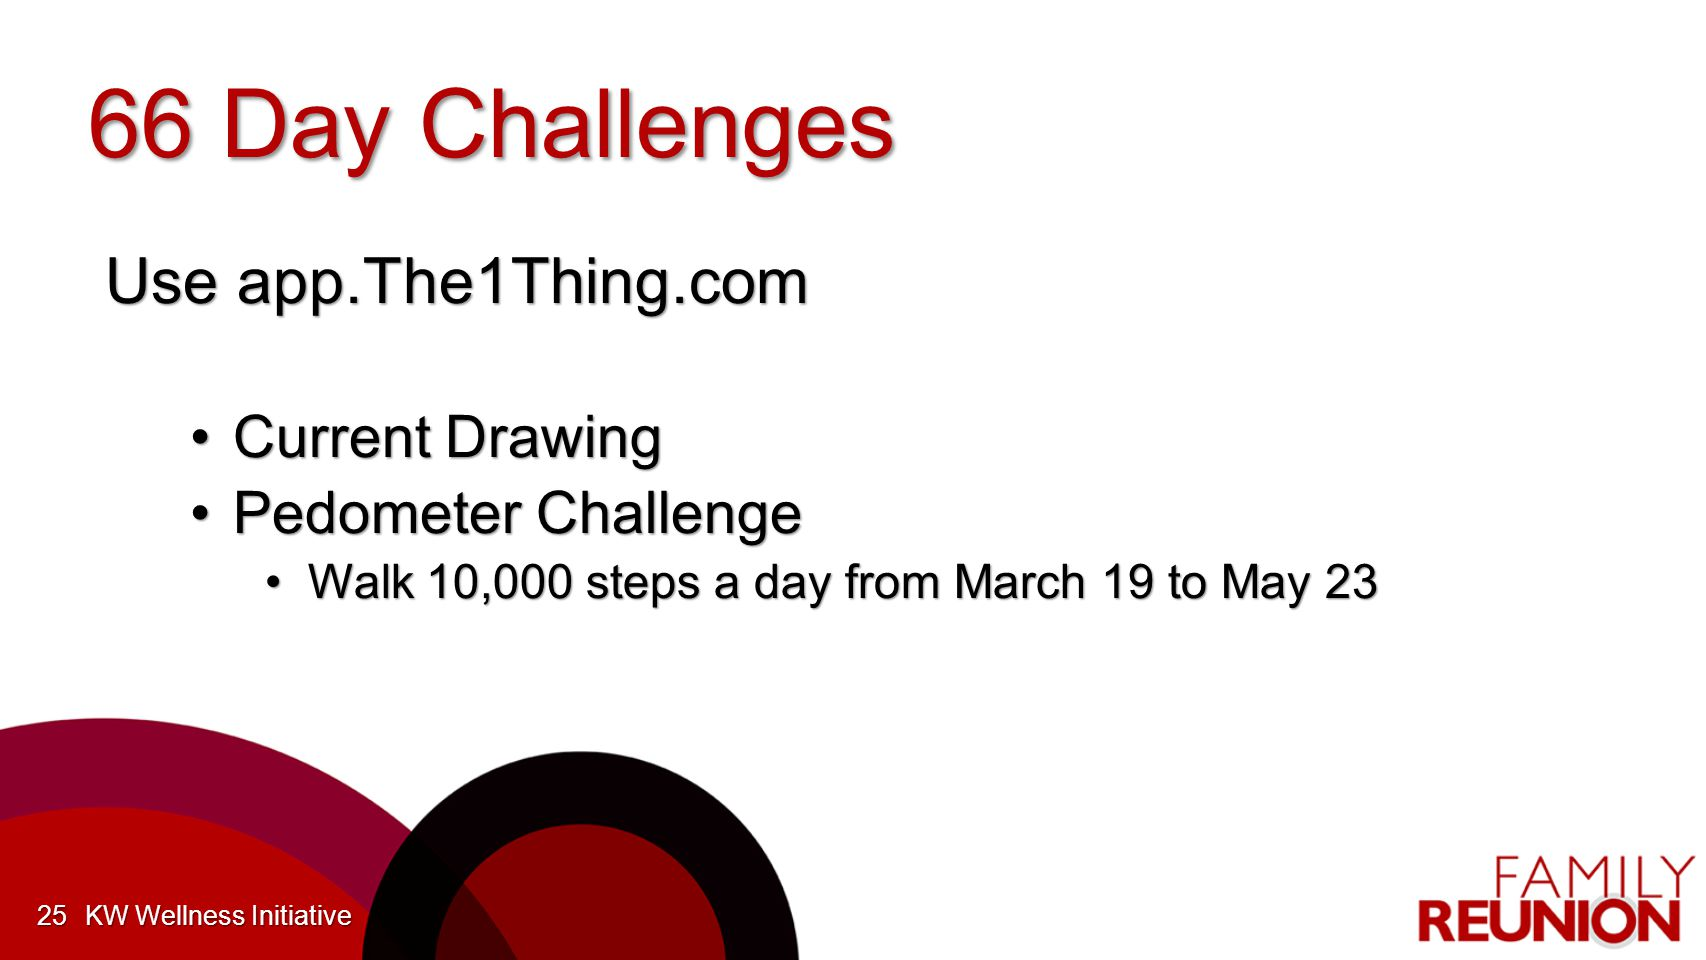 66 Day Challenges Use app.The1Thing.com Current DrawingCurrent Drawing Pedometer ChallengePedometer Challenge Walk 10,000 steps a day from March 19 to May 23Walk 10,000 steps a day from March 19 to May 23 KW Wellness Initiative25